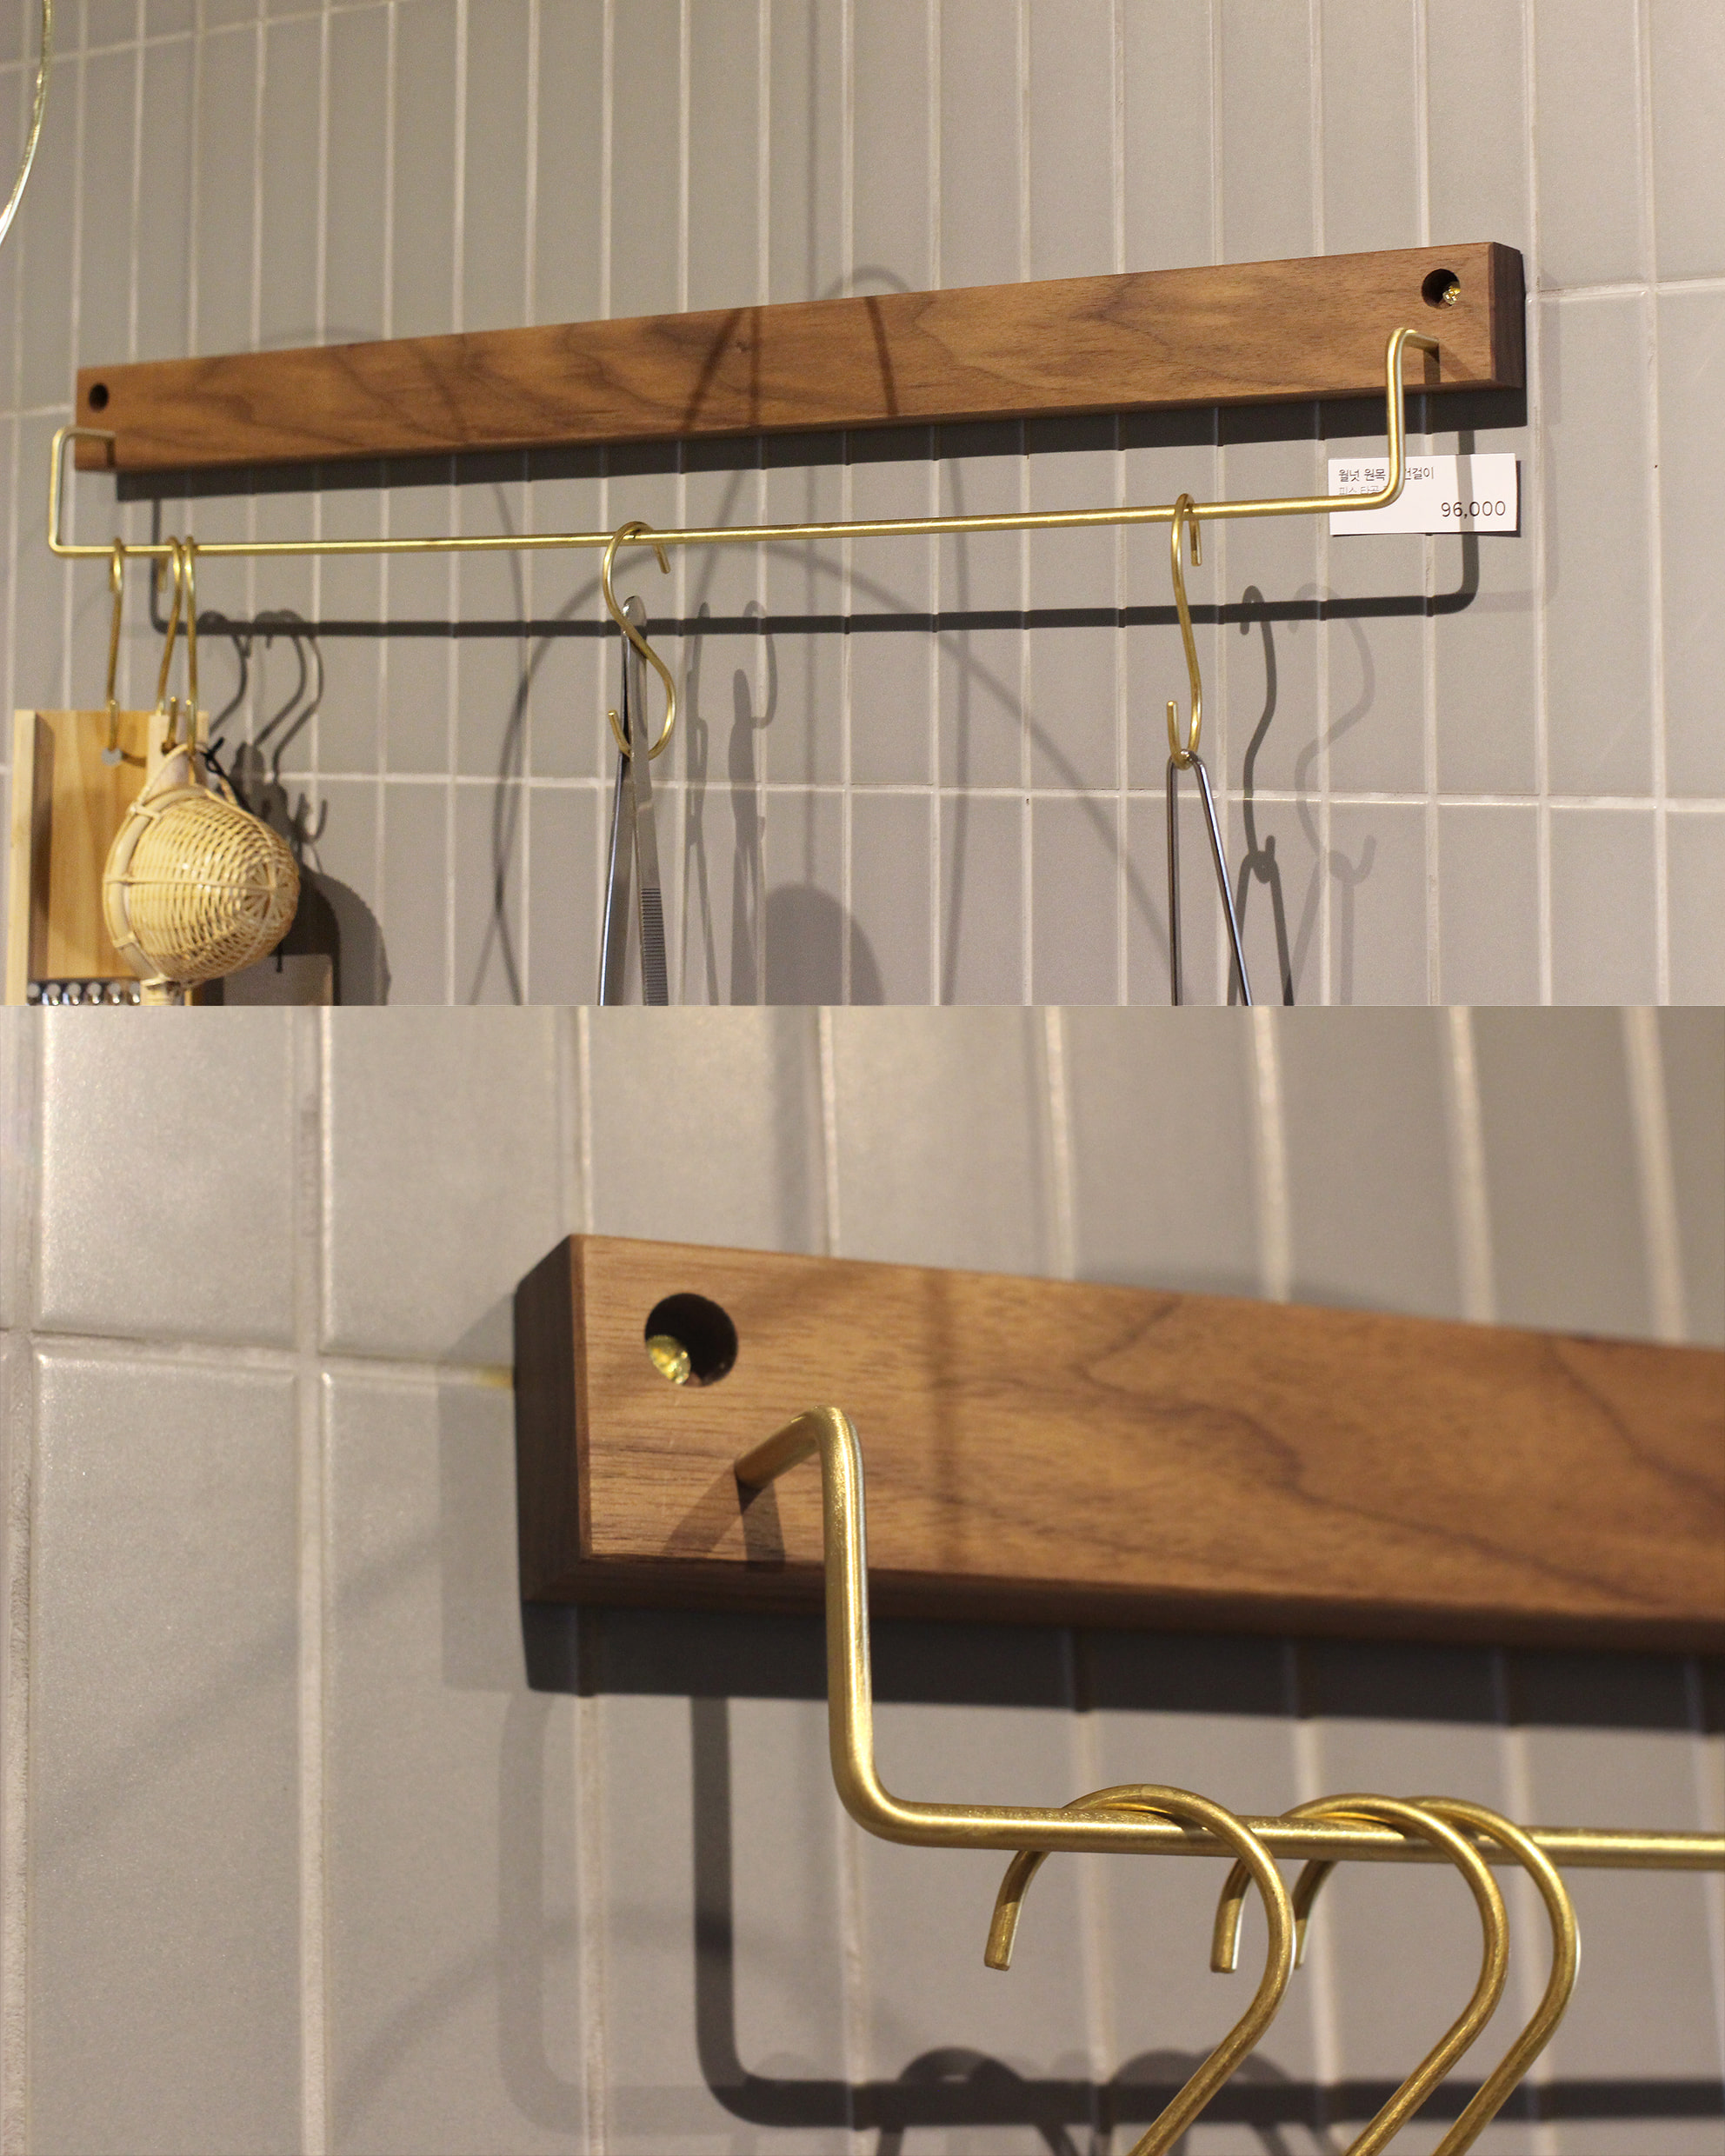 Towel rack_walnut wood